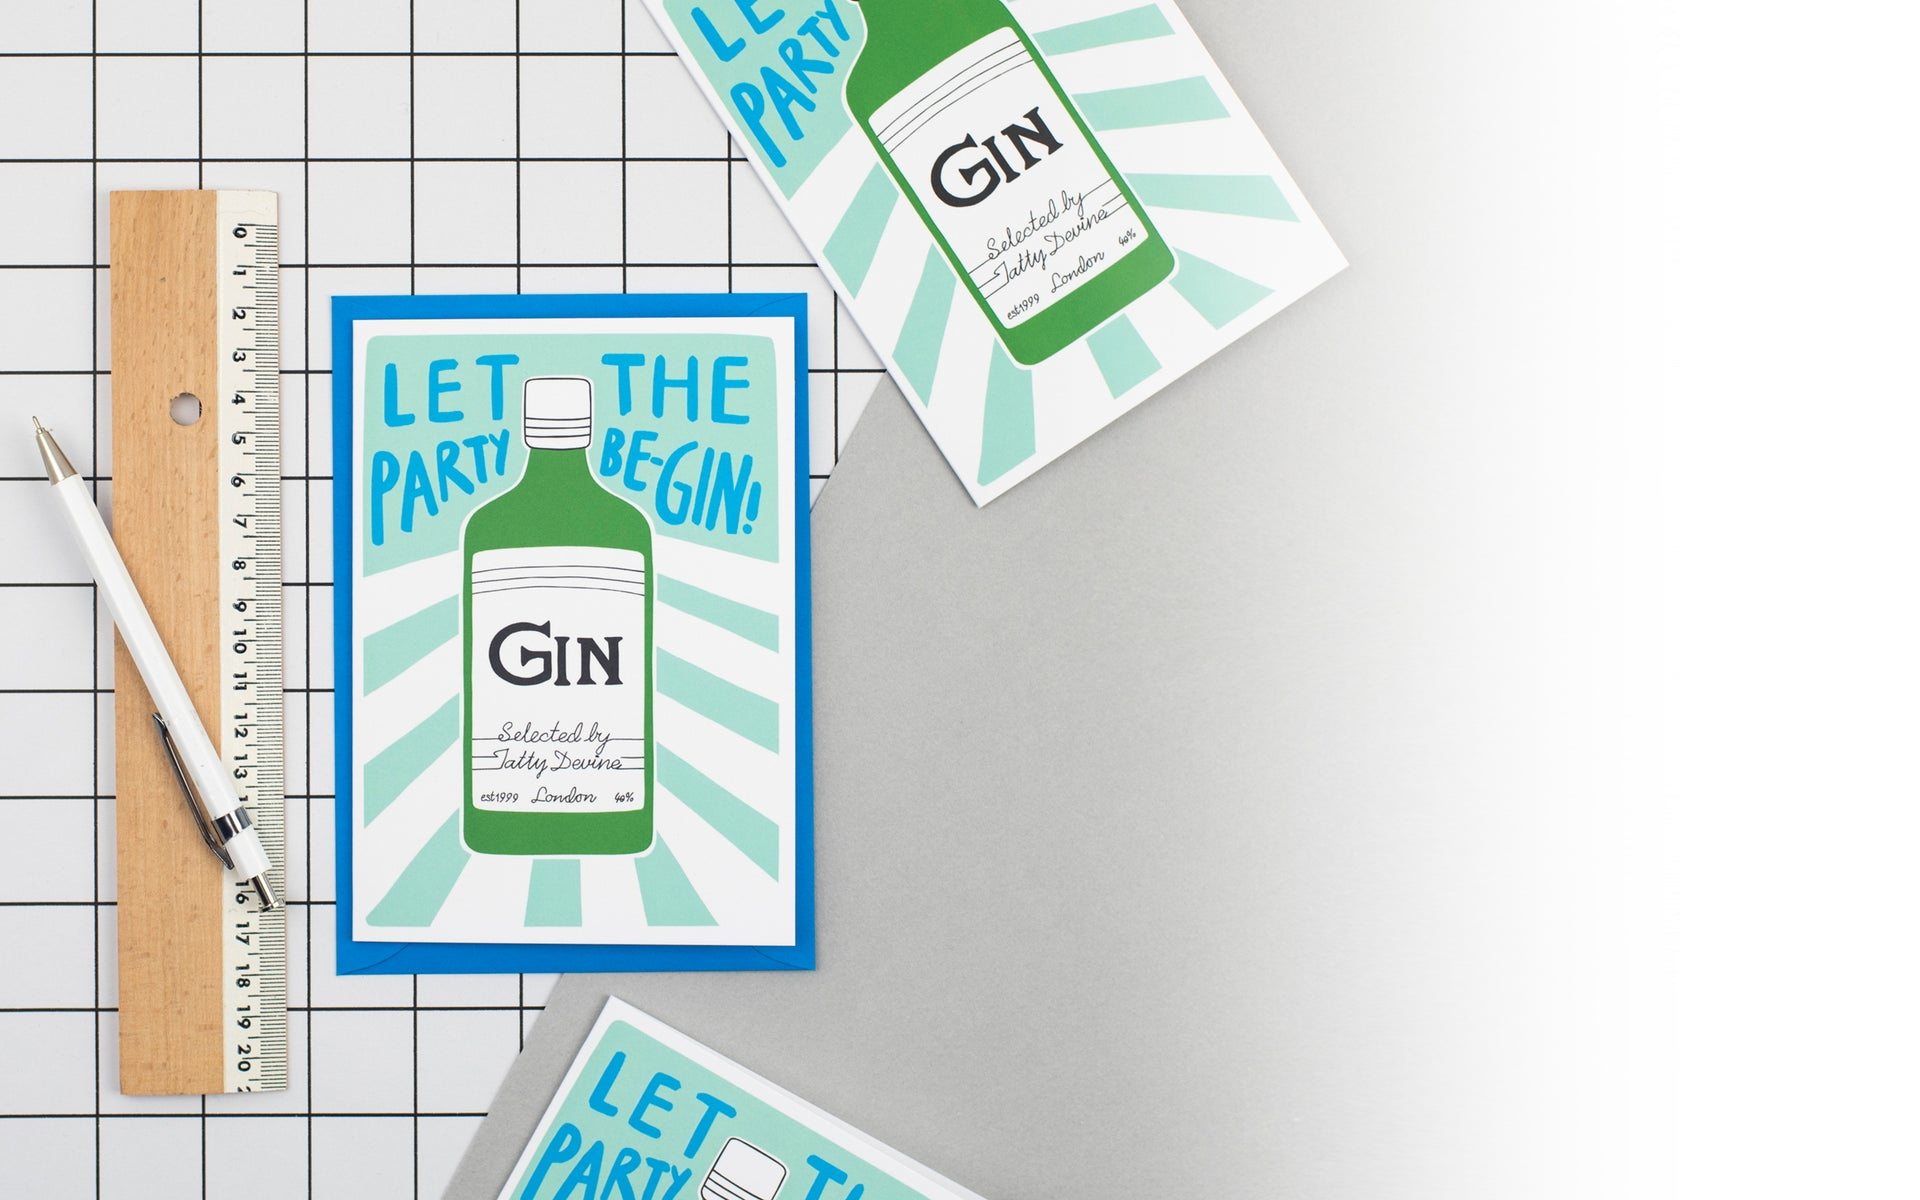 alison-hardcastle-gin-party-card